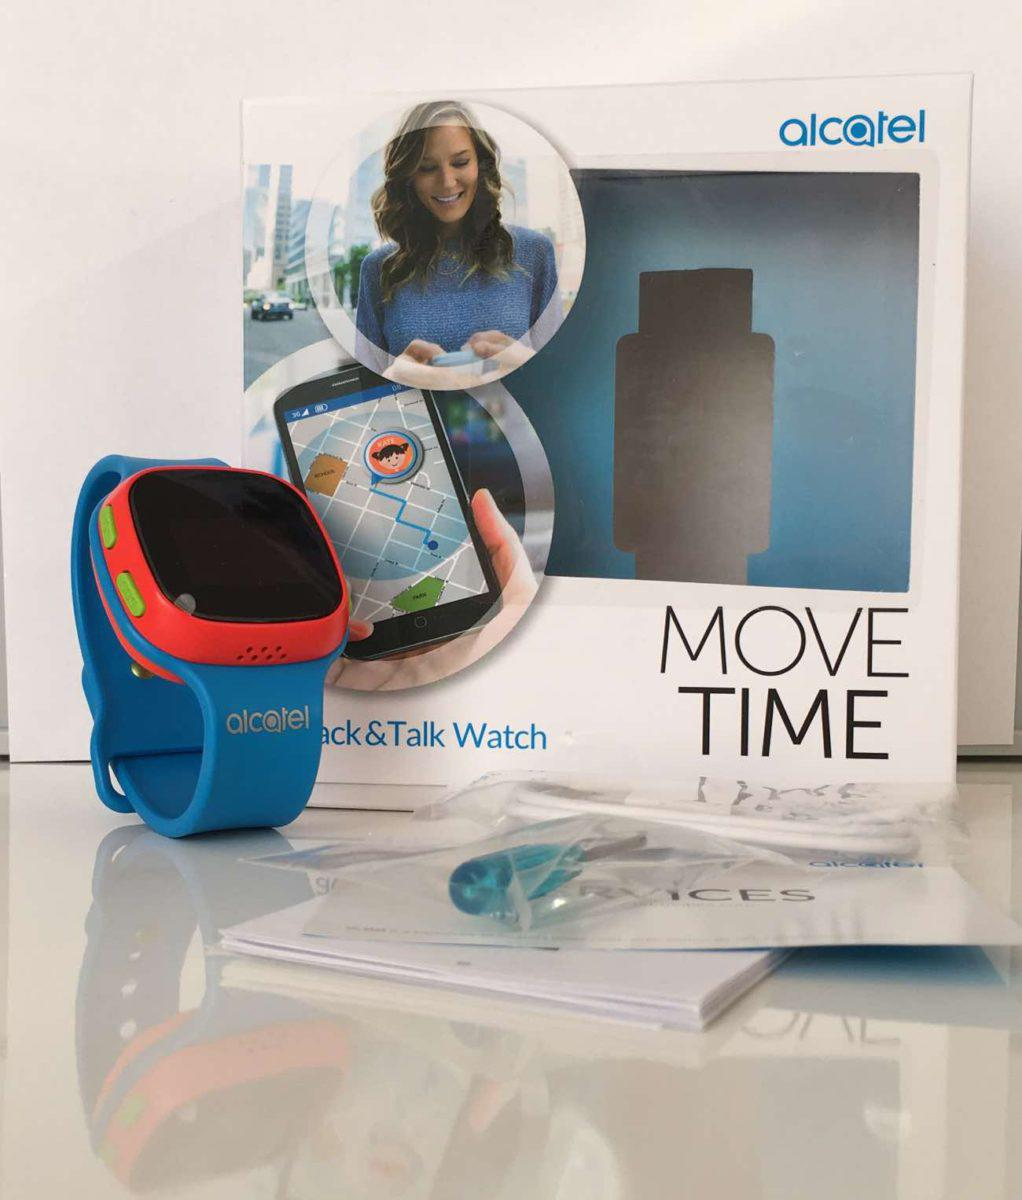 Alcatel Move Time Track and Talk Verpackung und Lieferumfang